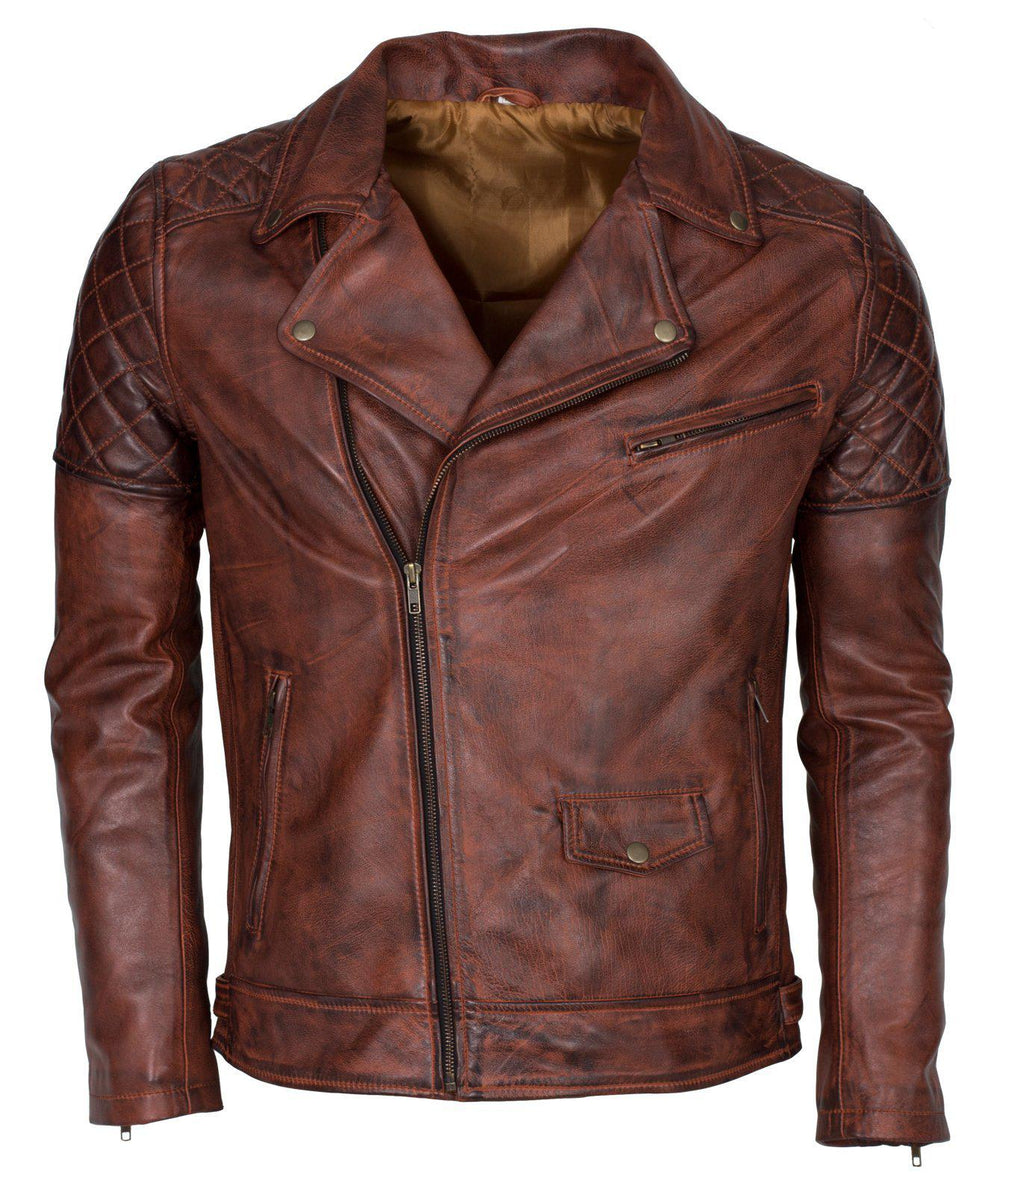 Men's Biker Vintage Leather Jacket